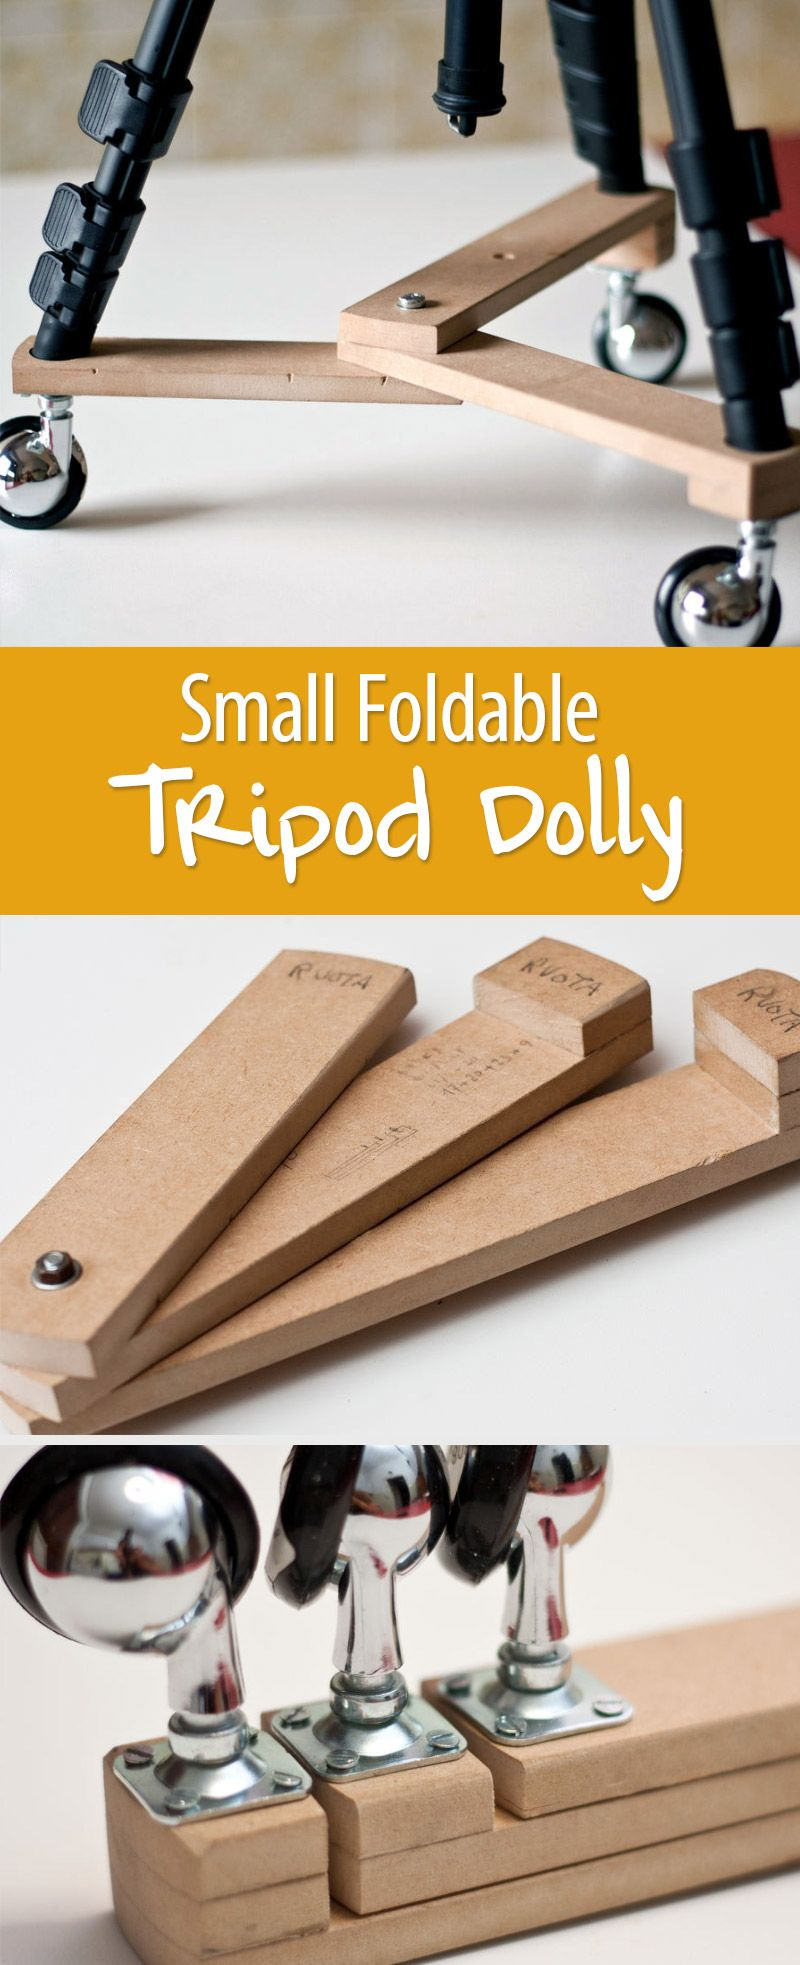 Small Foldable Tripod Dolly Diy Photography Diy Tripod Diy Camera